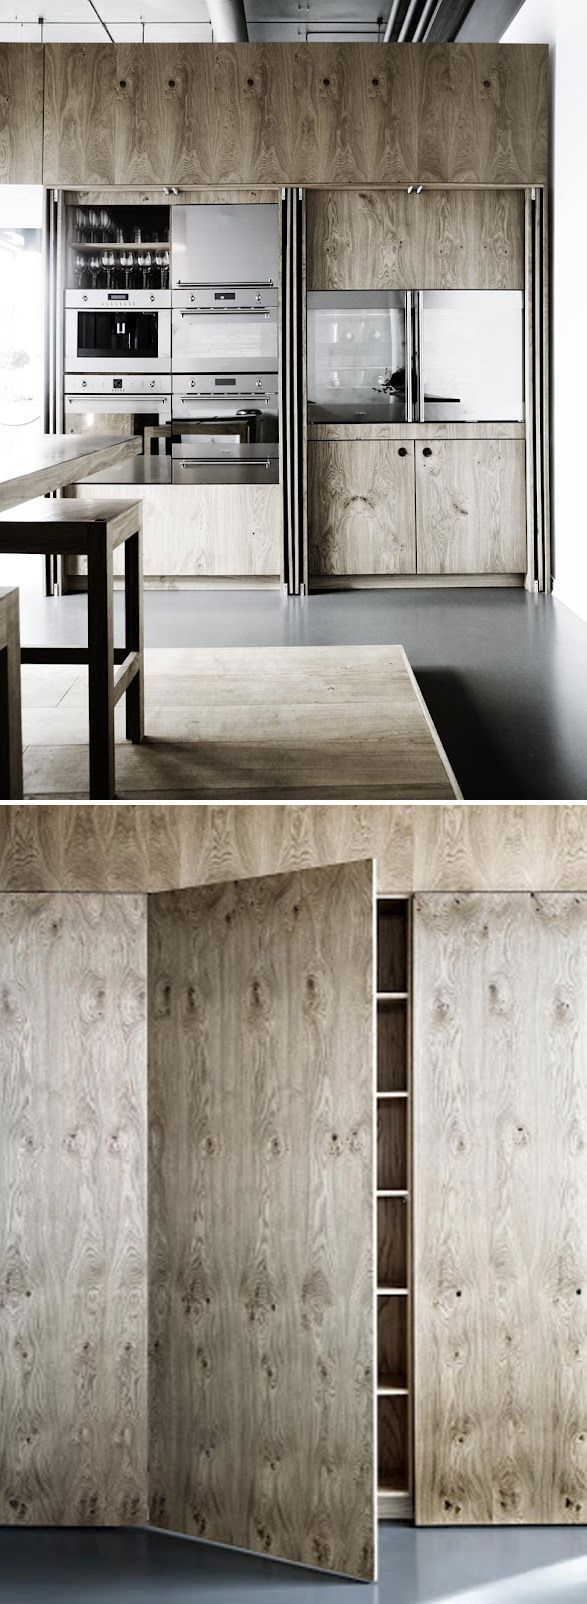 Grey Stained Plywood Cabinet Fronts On Ikea Base Cabinets Make A Clean And Modern Kitchen Wit Pallet Patio Furniture Diy Diy Patio Furniture Basement Furniture